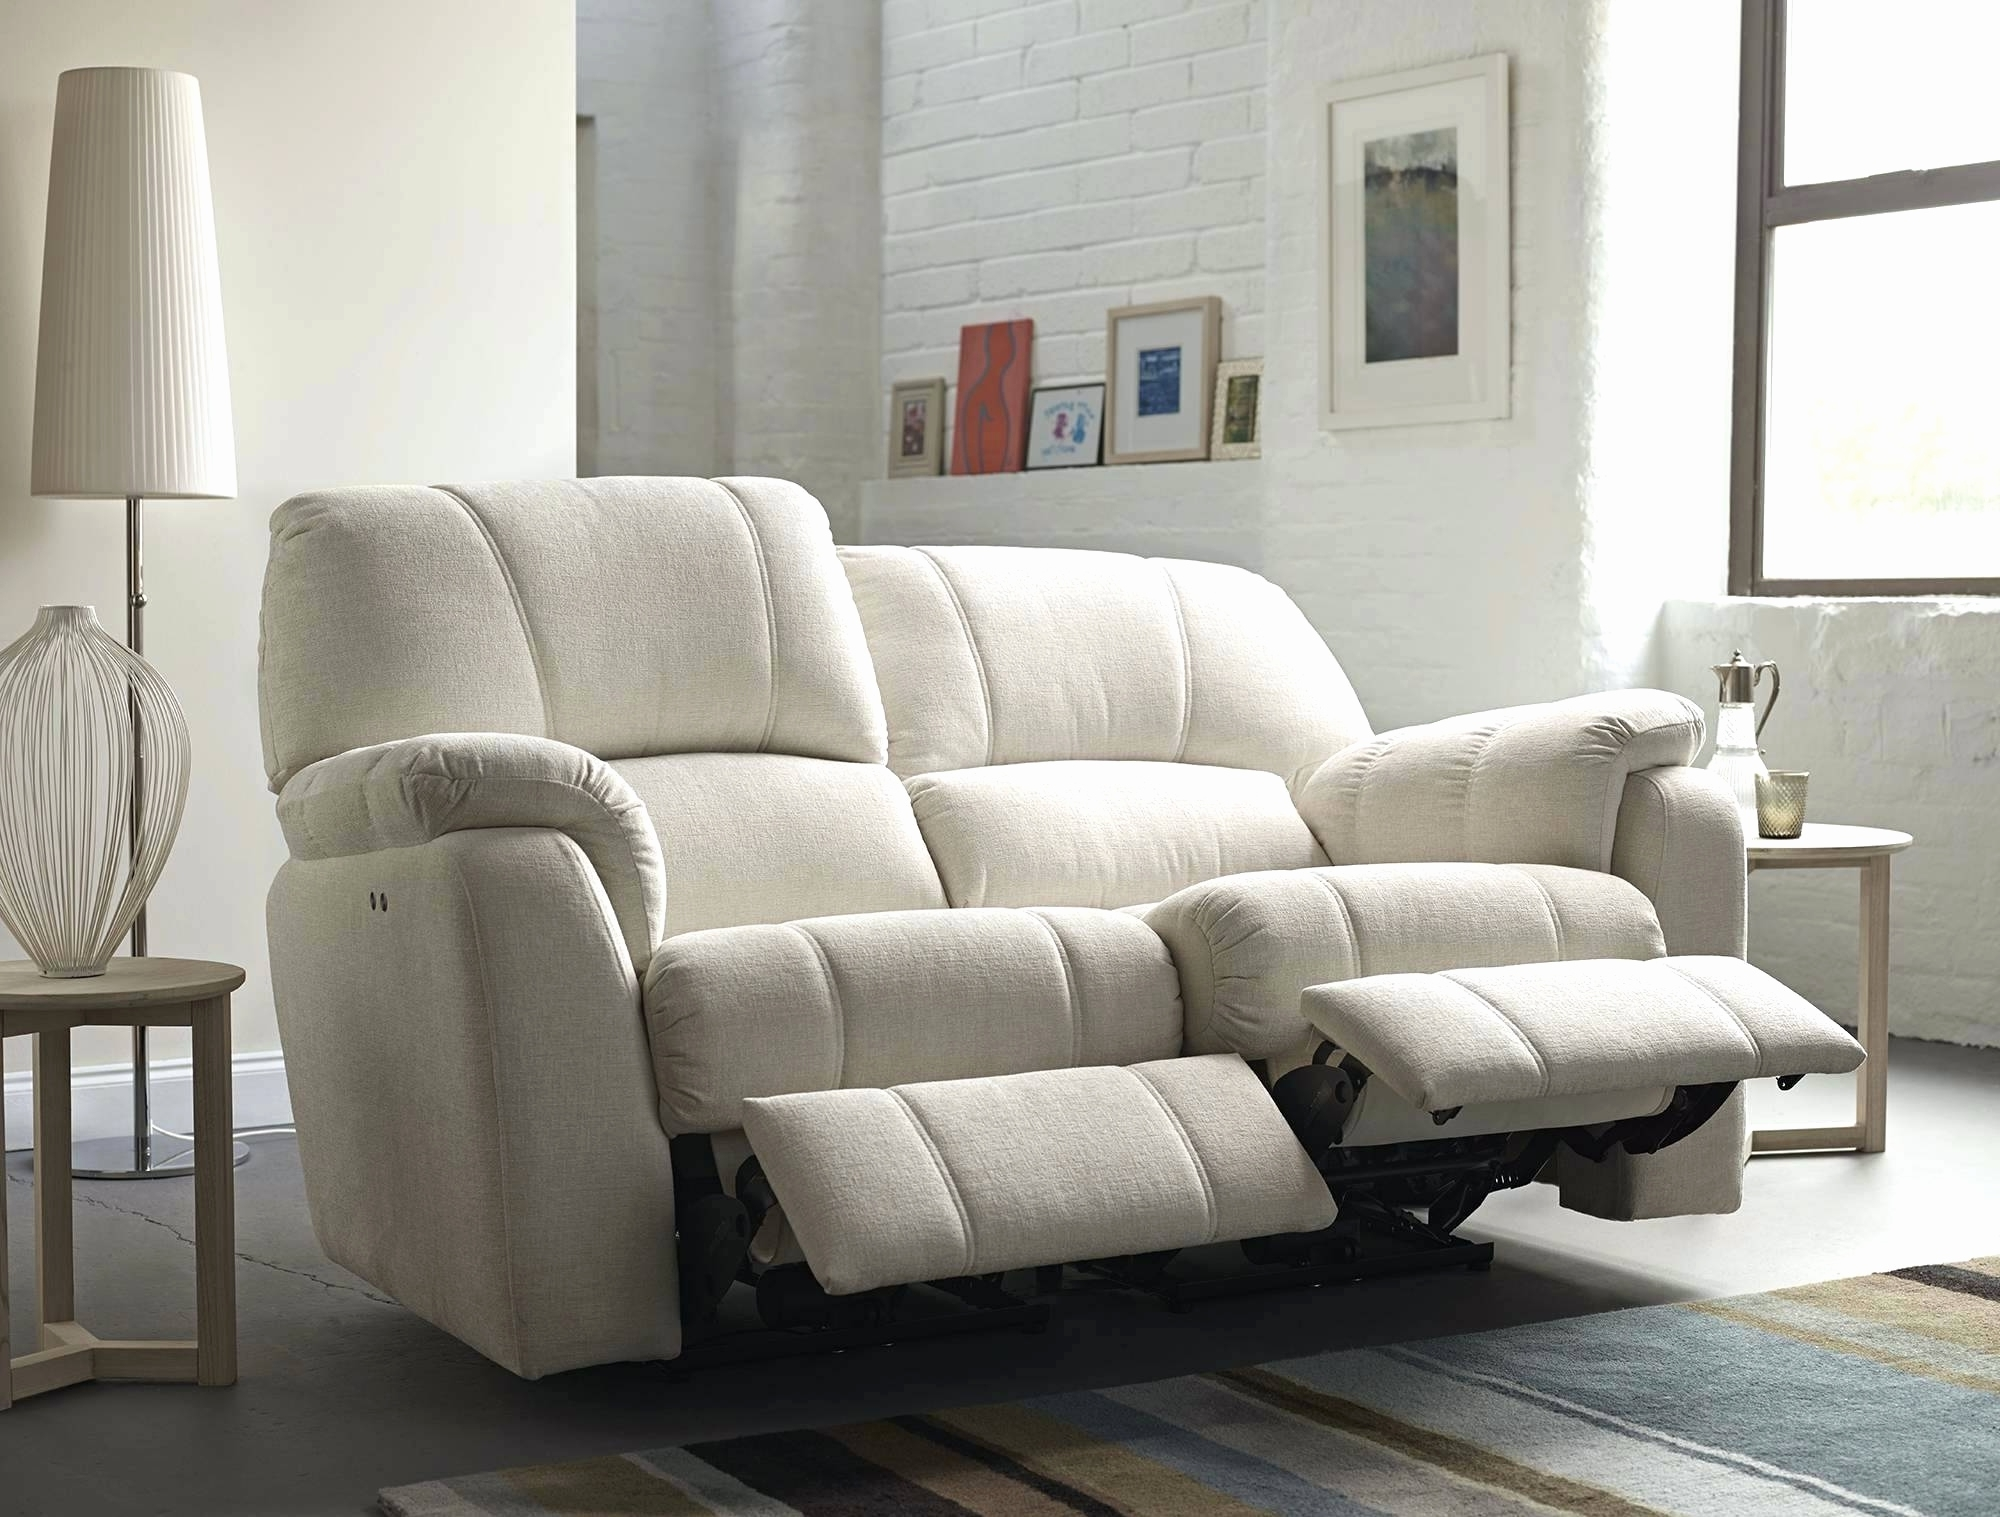 Current 2 Seat Recliner Sofas Regarding Elegant 2 Seater Couches For Sale 2018 – Couches And Sofas Ideas (View 11 of 20)